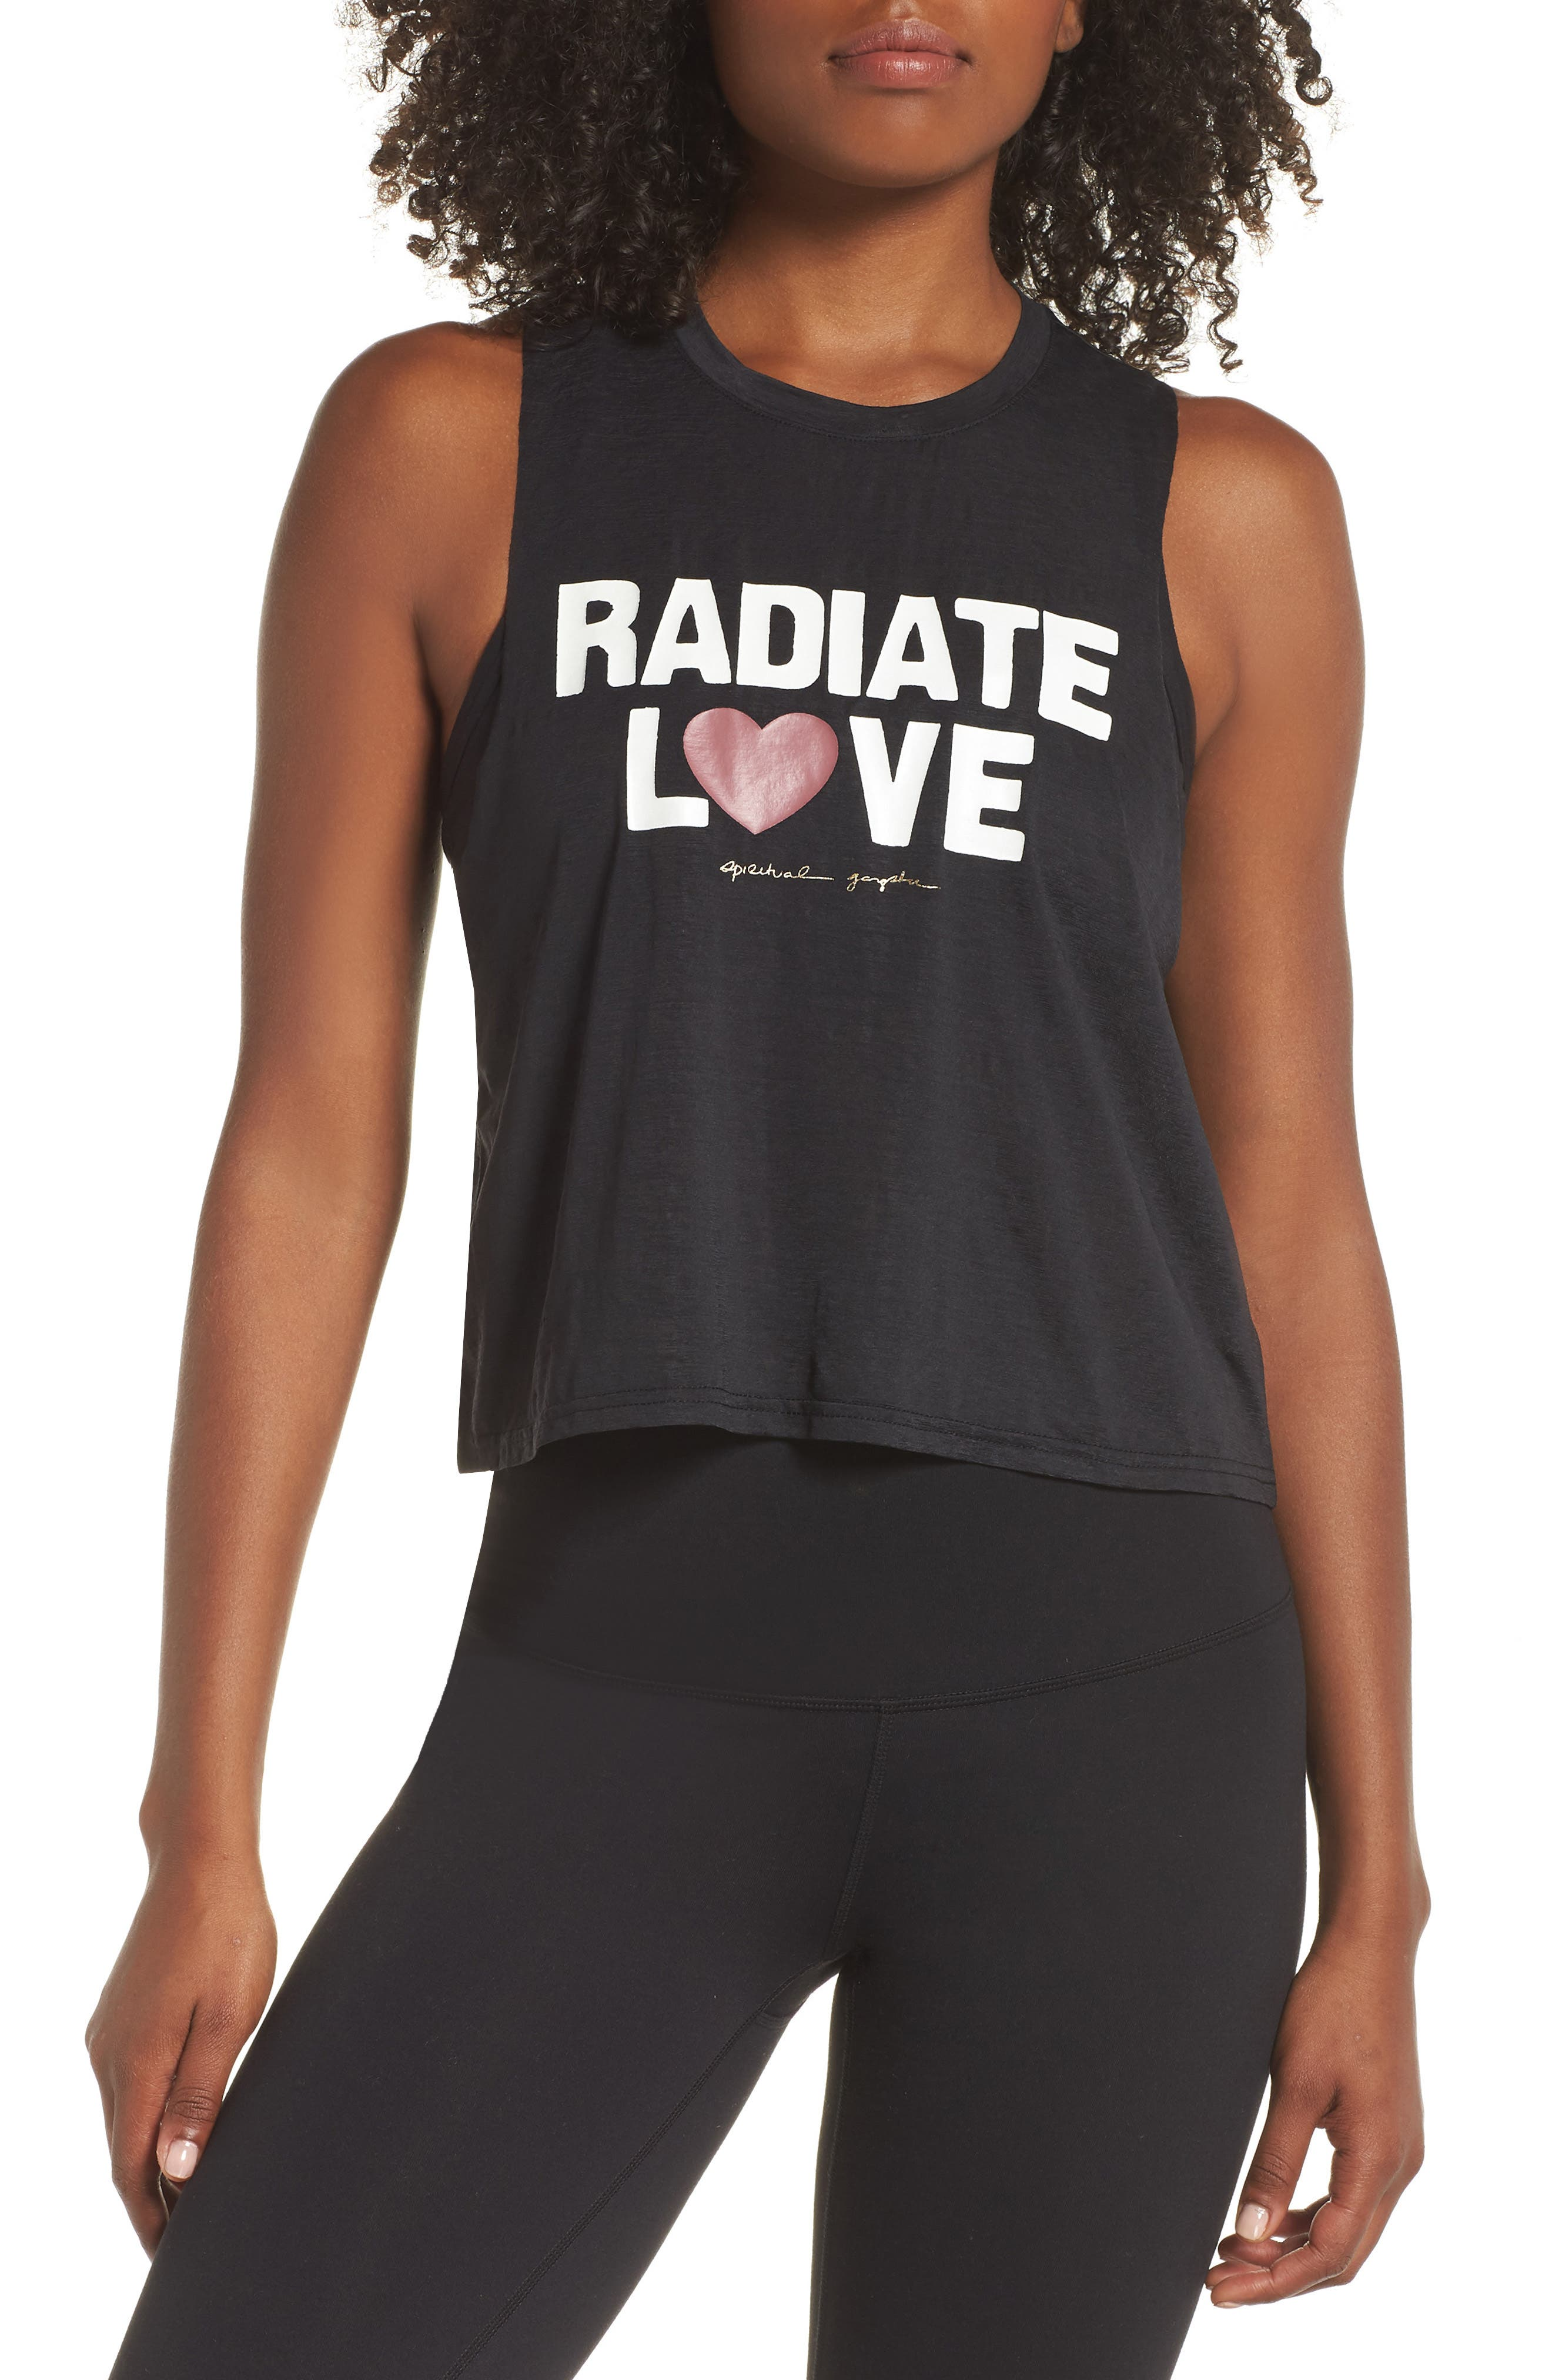 Radiate Love Crop Tank Top,                             Main thumbnail 1, color,                             003